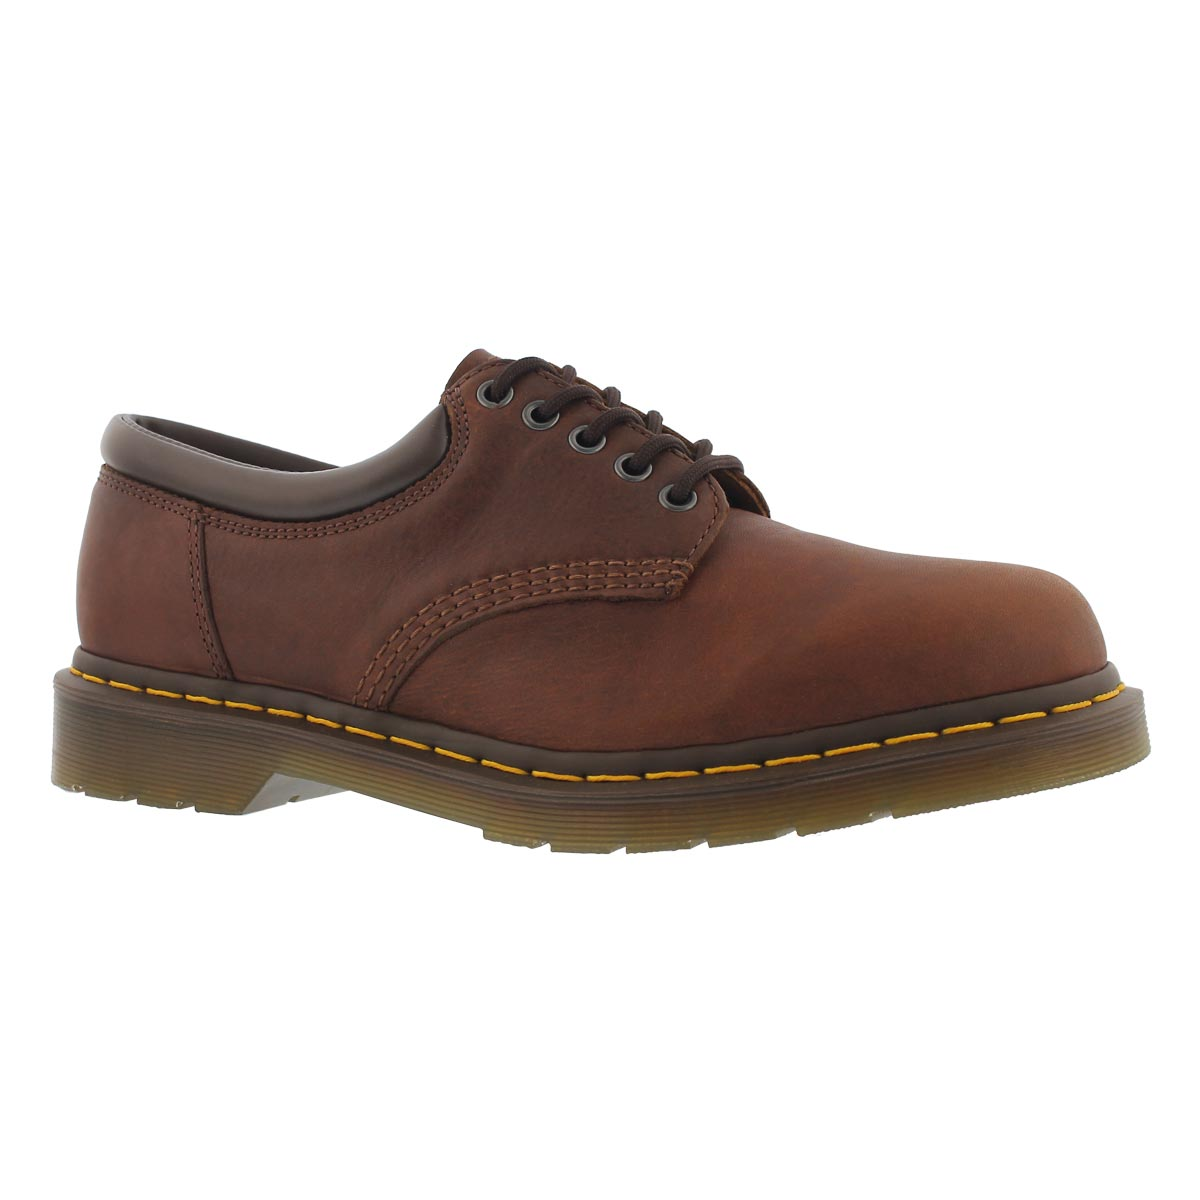 Mns 8053 tan 5-eye harvest  oxford